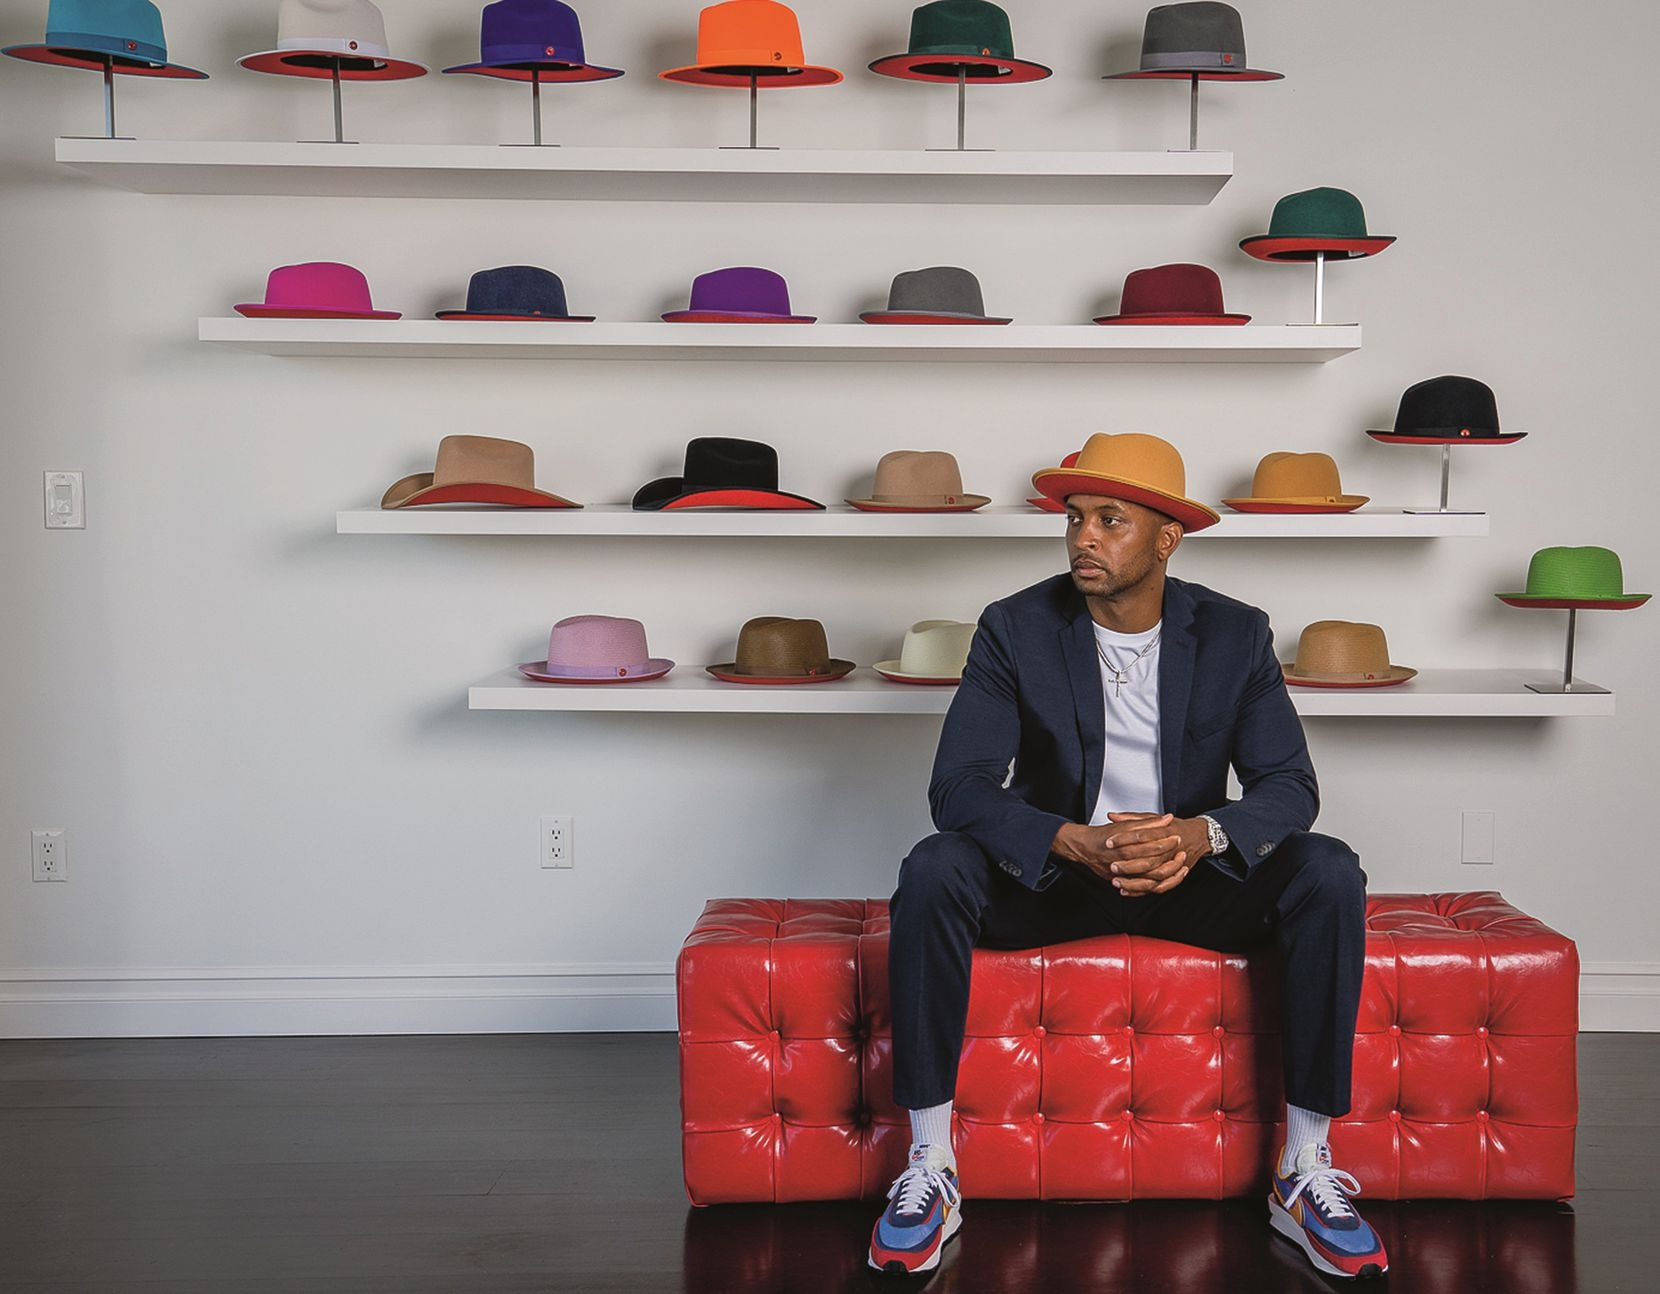 The red under its brim is a signature feature of Keith & James hats. James Keith, milliner from North Carolina, is photographed with his creations. Six custom hats with display-quality clear hatboxes are $95,000 in this year's book.